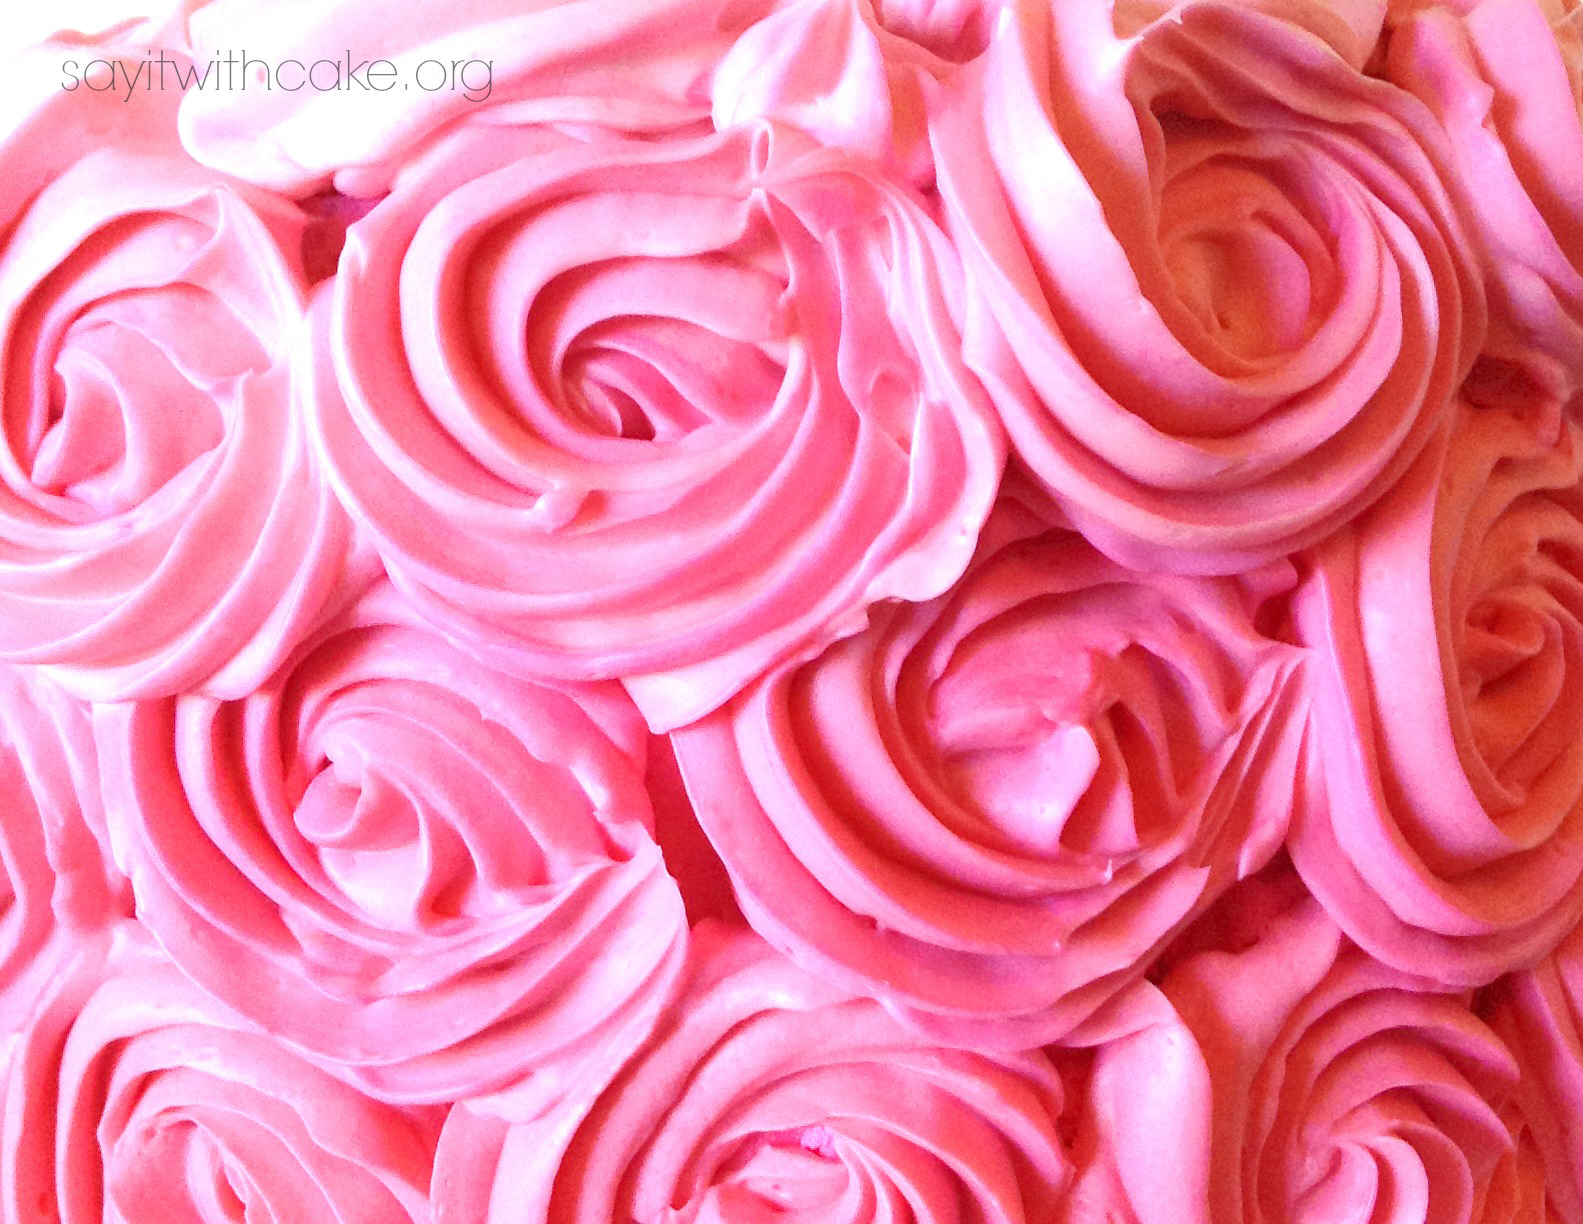 Pink rose swirl cake say it with cake this cake is very easy to make once you get the swiss meringue buttercream down i had a few problems my first time but found some helpful websites here mightylinksfo